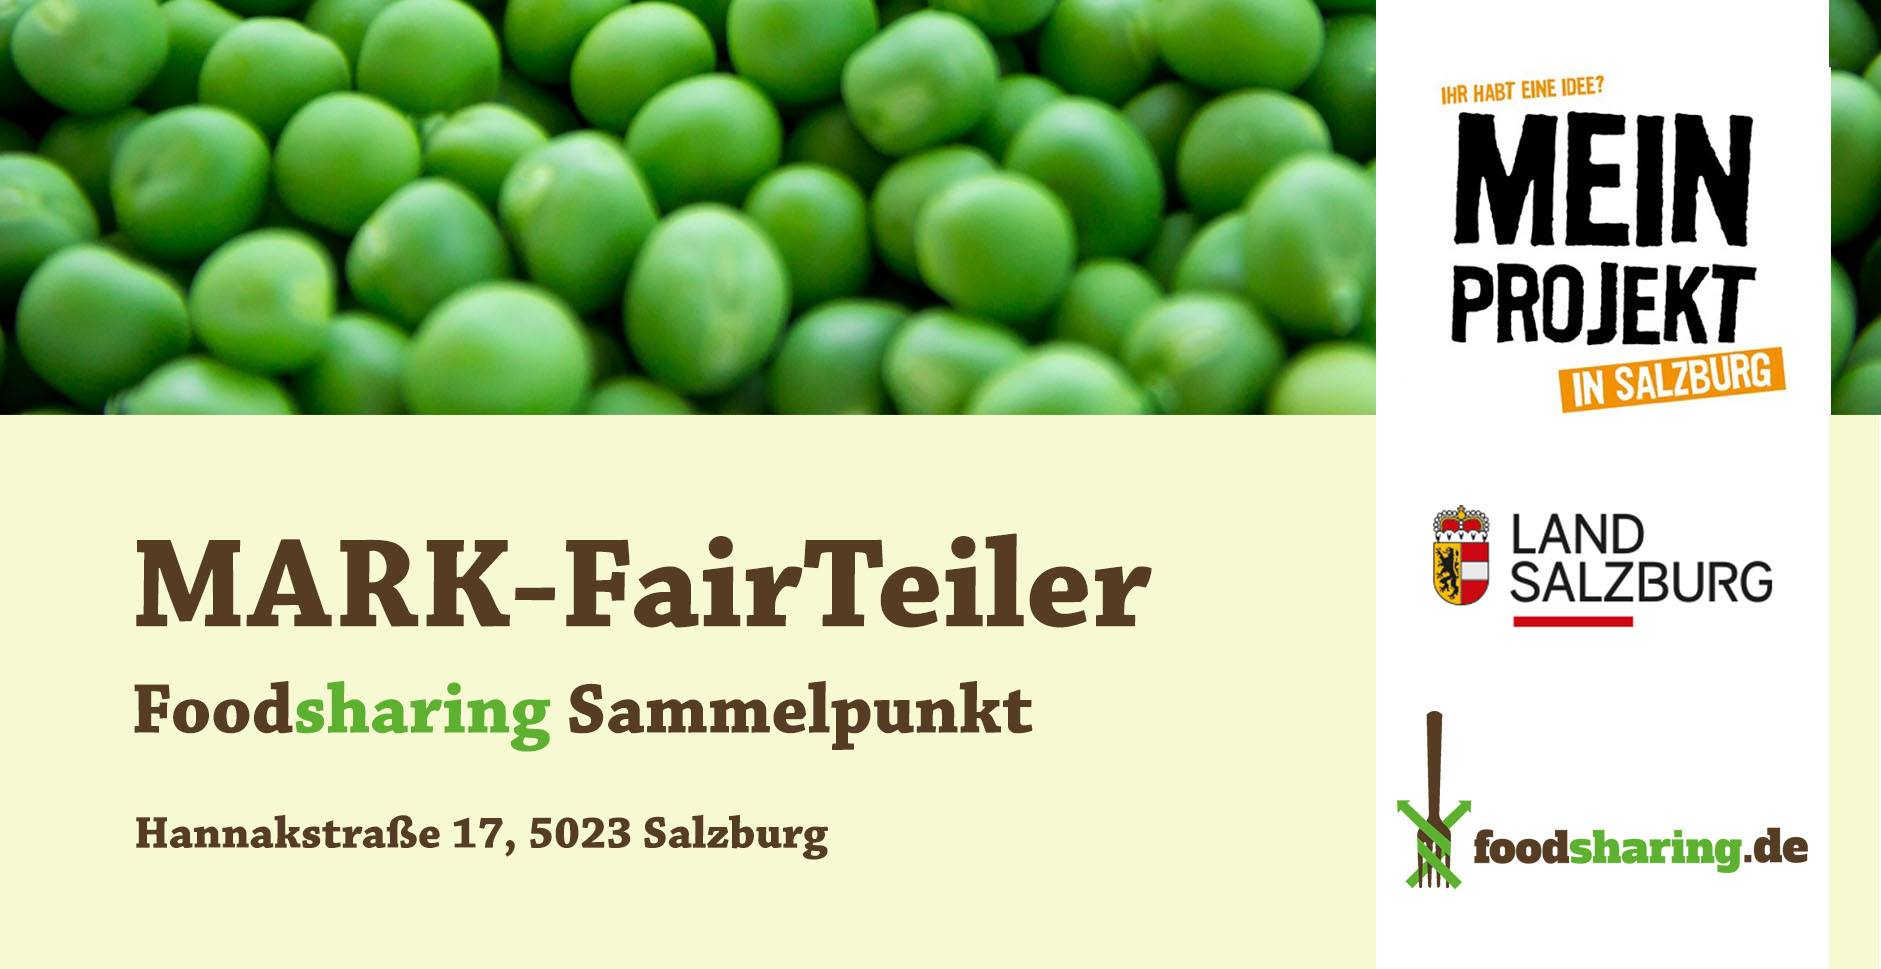 MARK-FaIR-Teiler